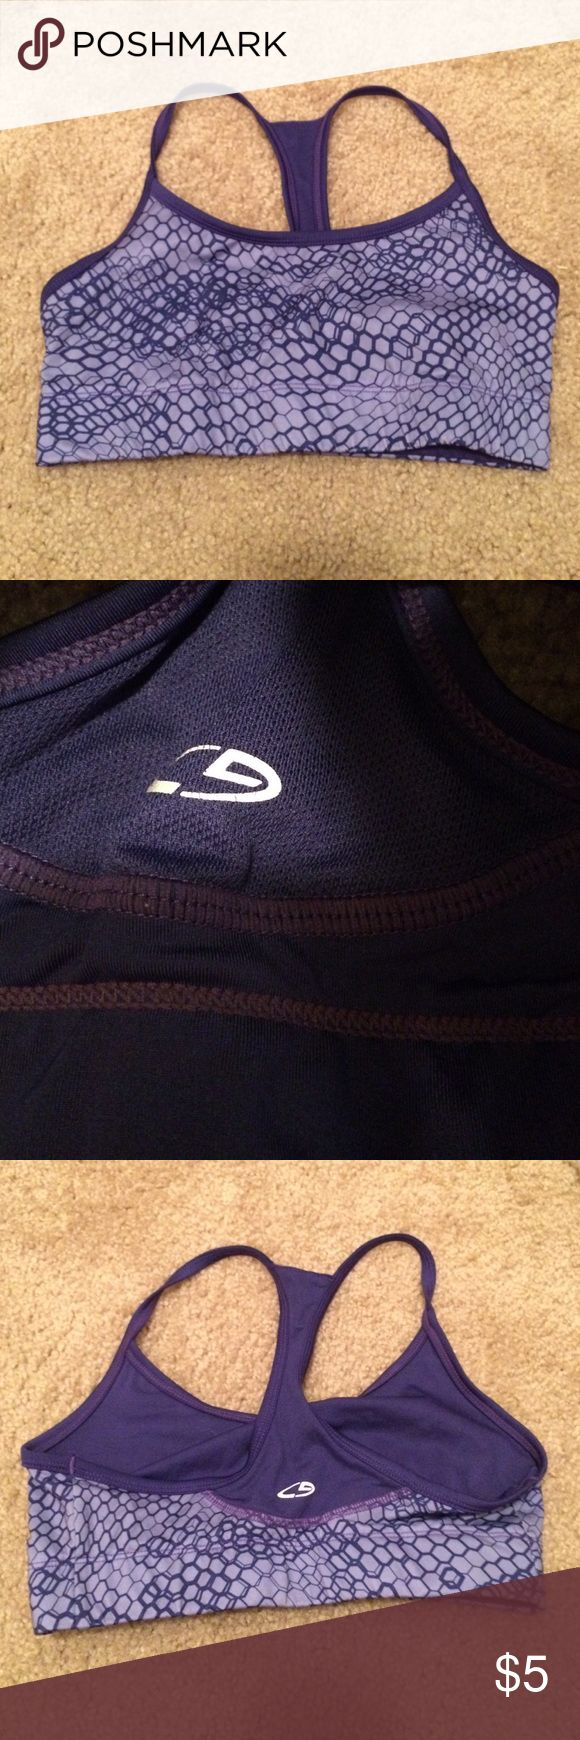 Purple snakeskin patterned sports bra Sports bra, worn once and realized I had bought the wrong size C9 Sportswear Other